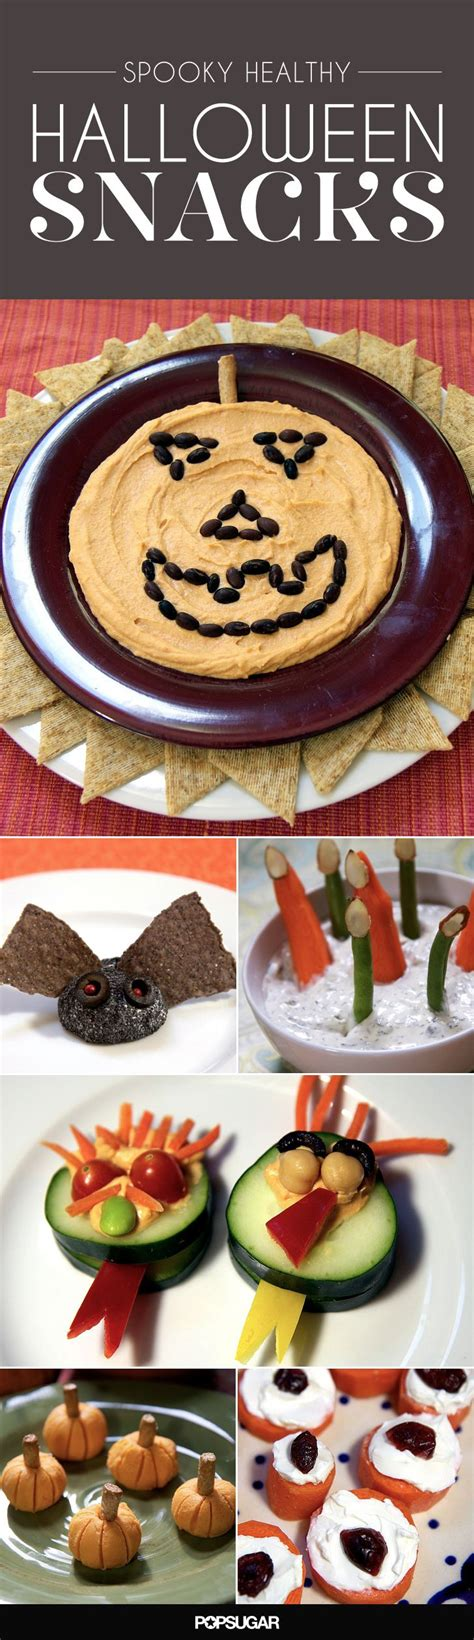 Halloween Appetizers For Adults by Spooky Healthy Halloween Appetizers To Scare Away Hunger